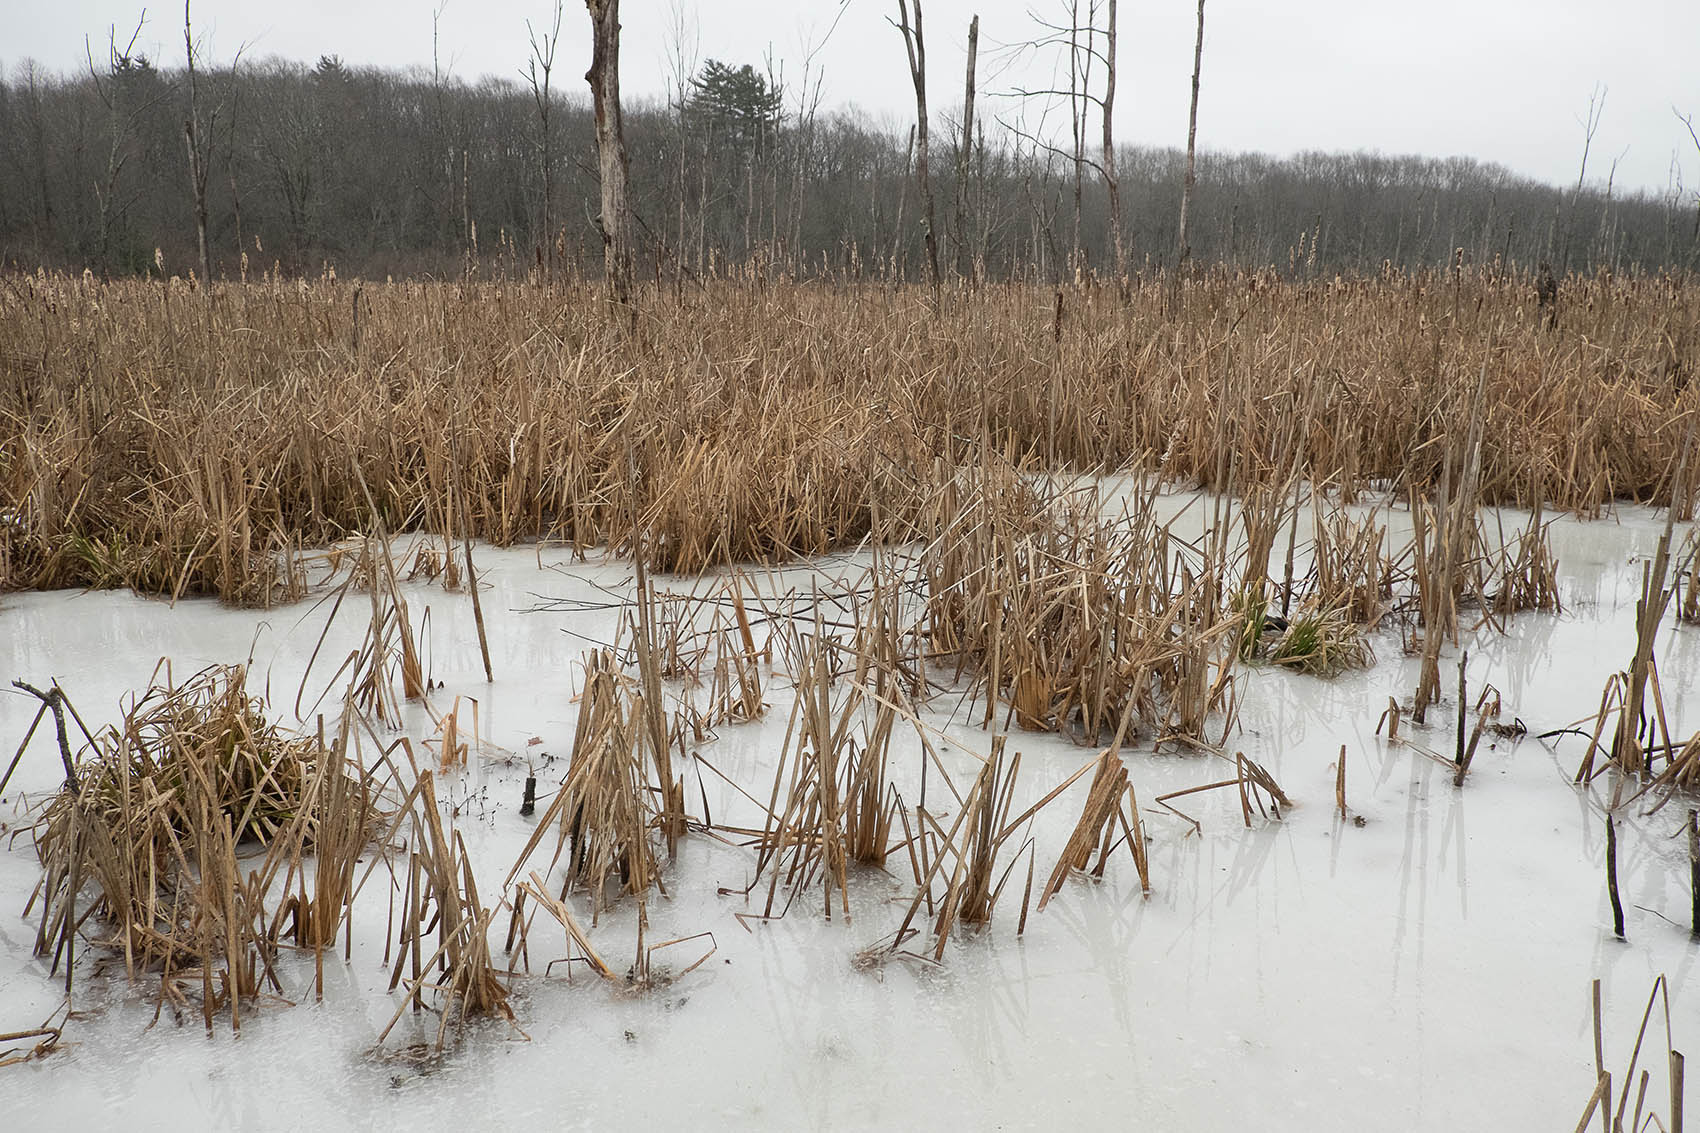 Winter ice and reeds at Mary Cummings Park